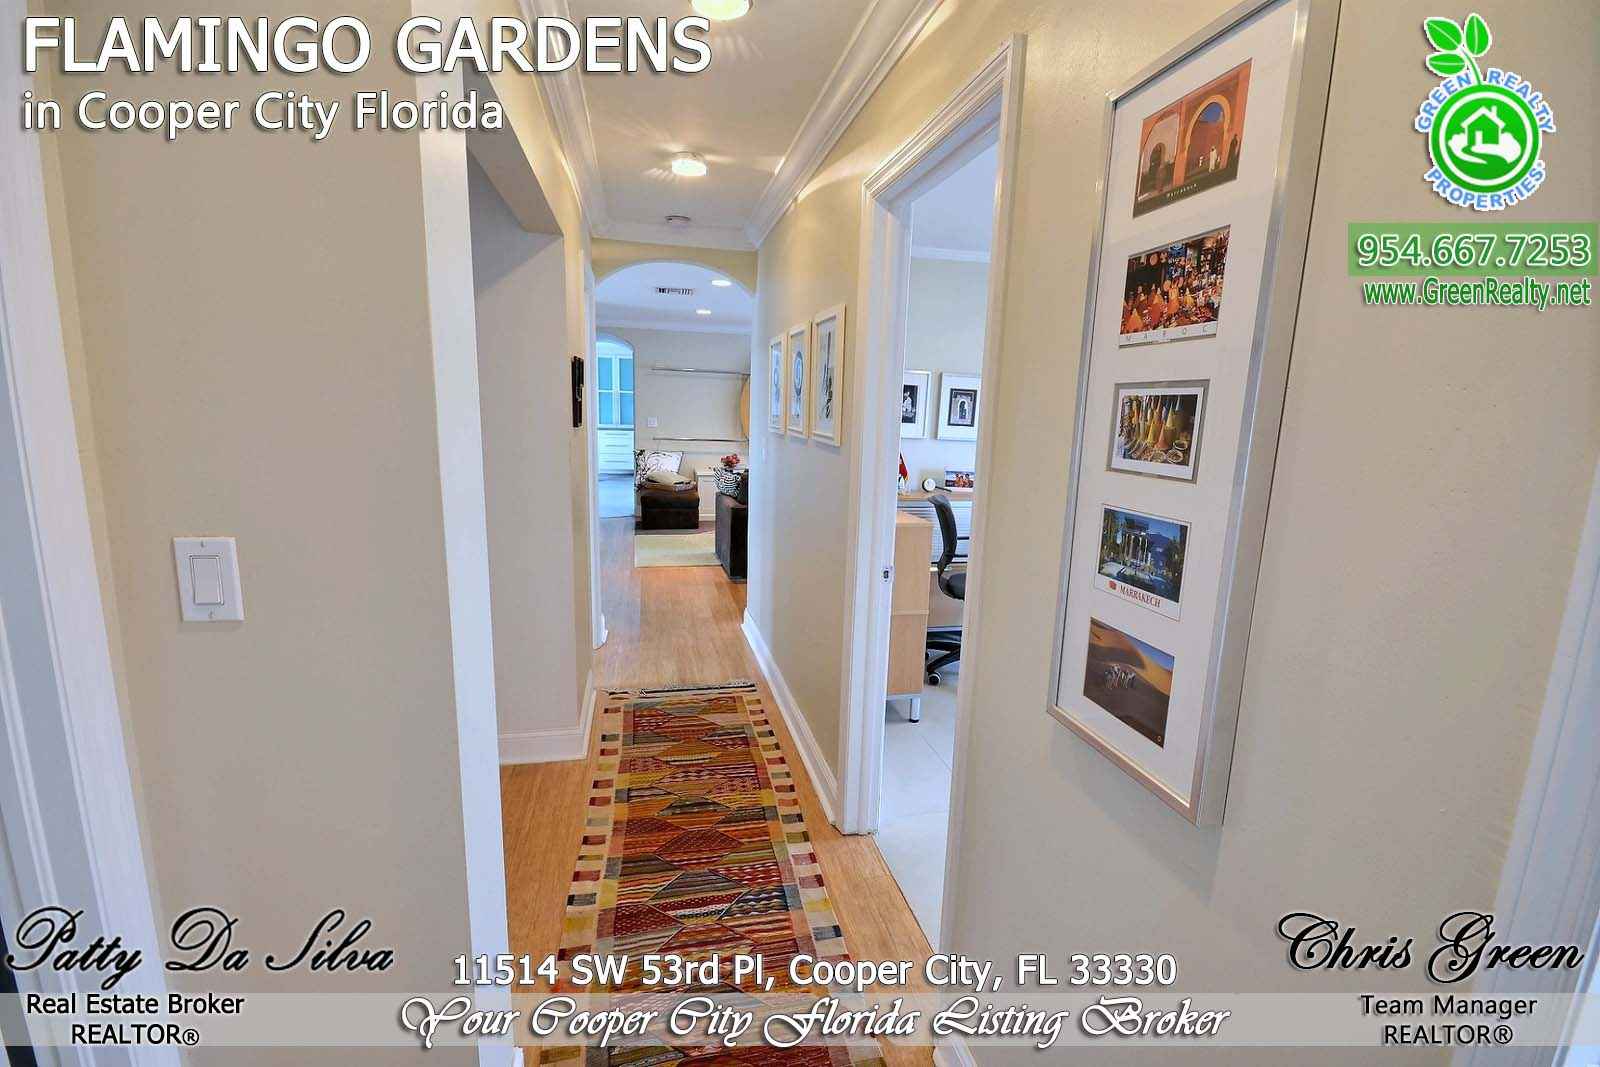 27 Flamingo Gardens Cooper City Homes For Sale (24)